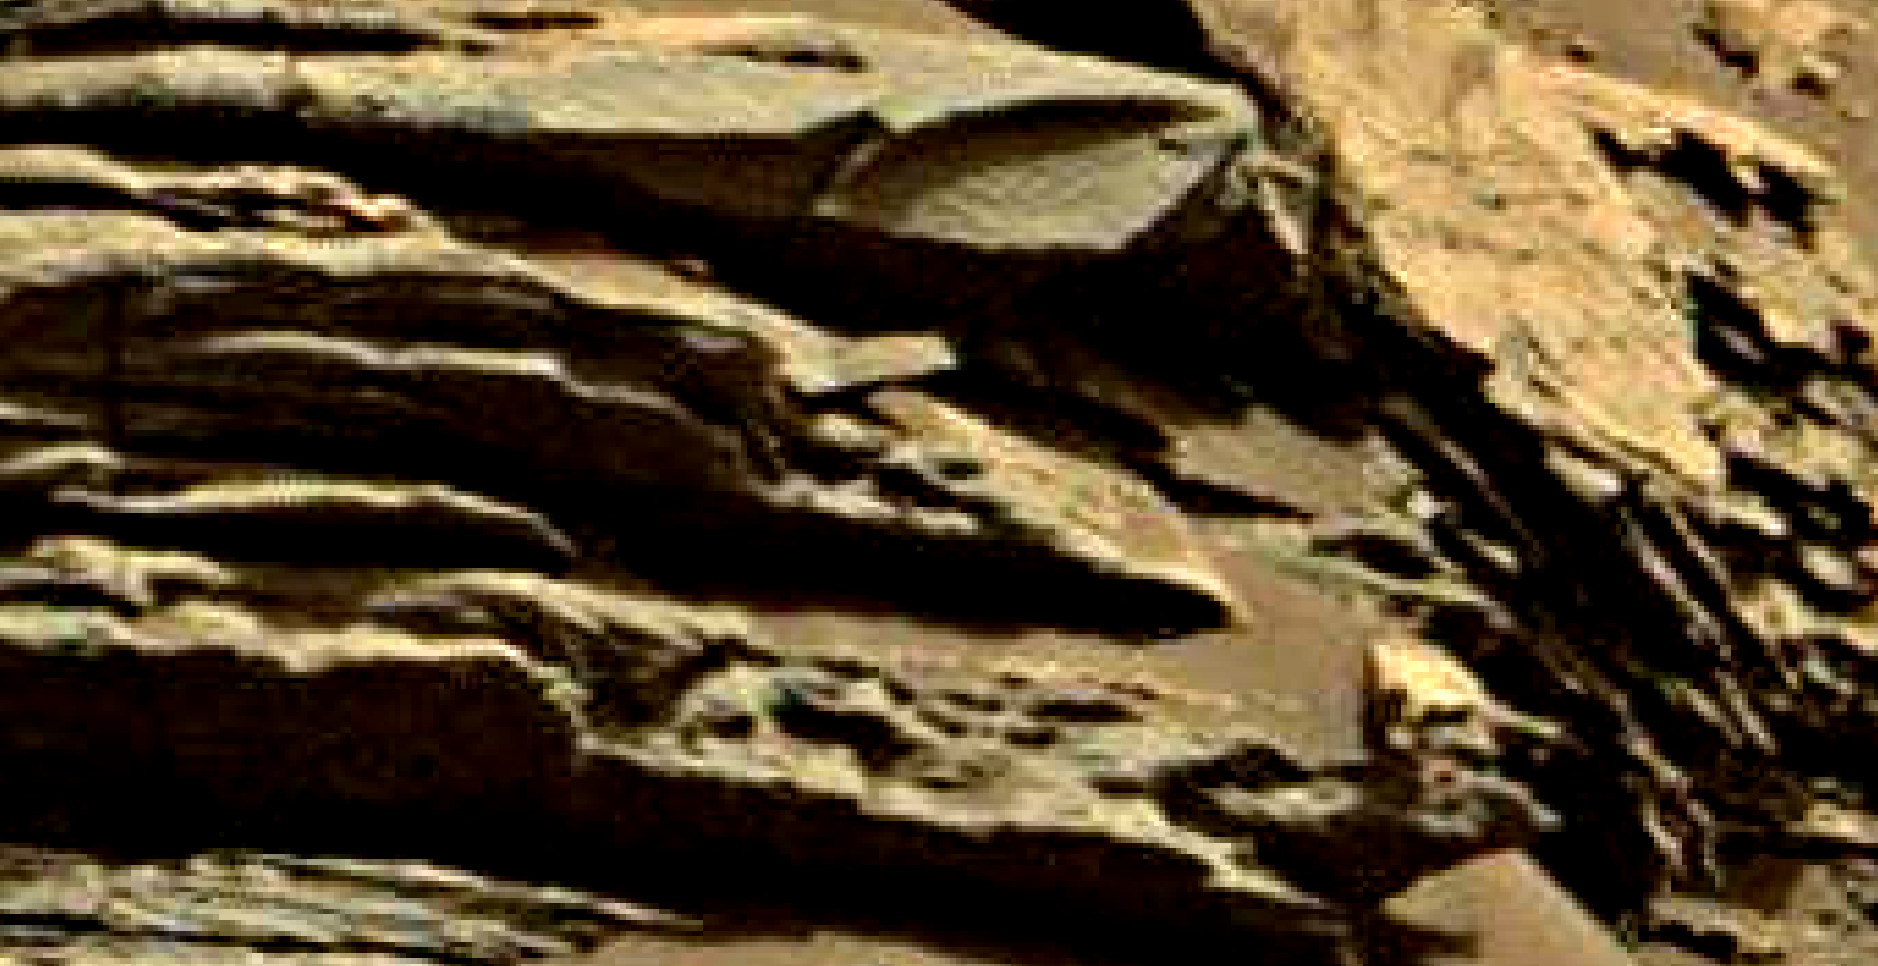 mars-sol-1450-anomaly-artifacts-3b-was-life-on-mars